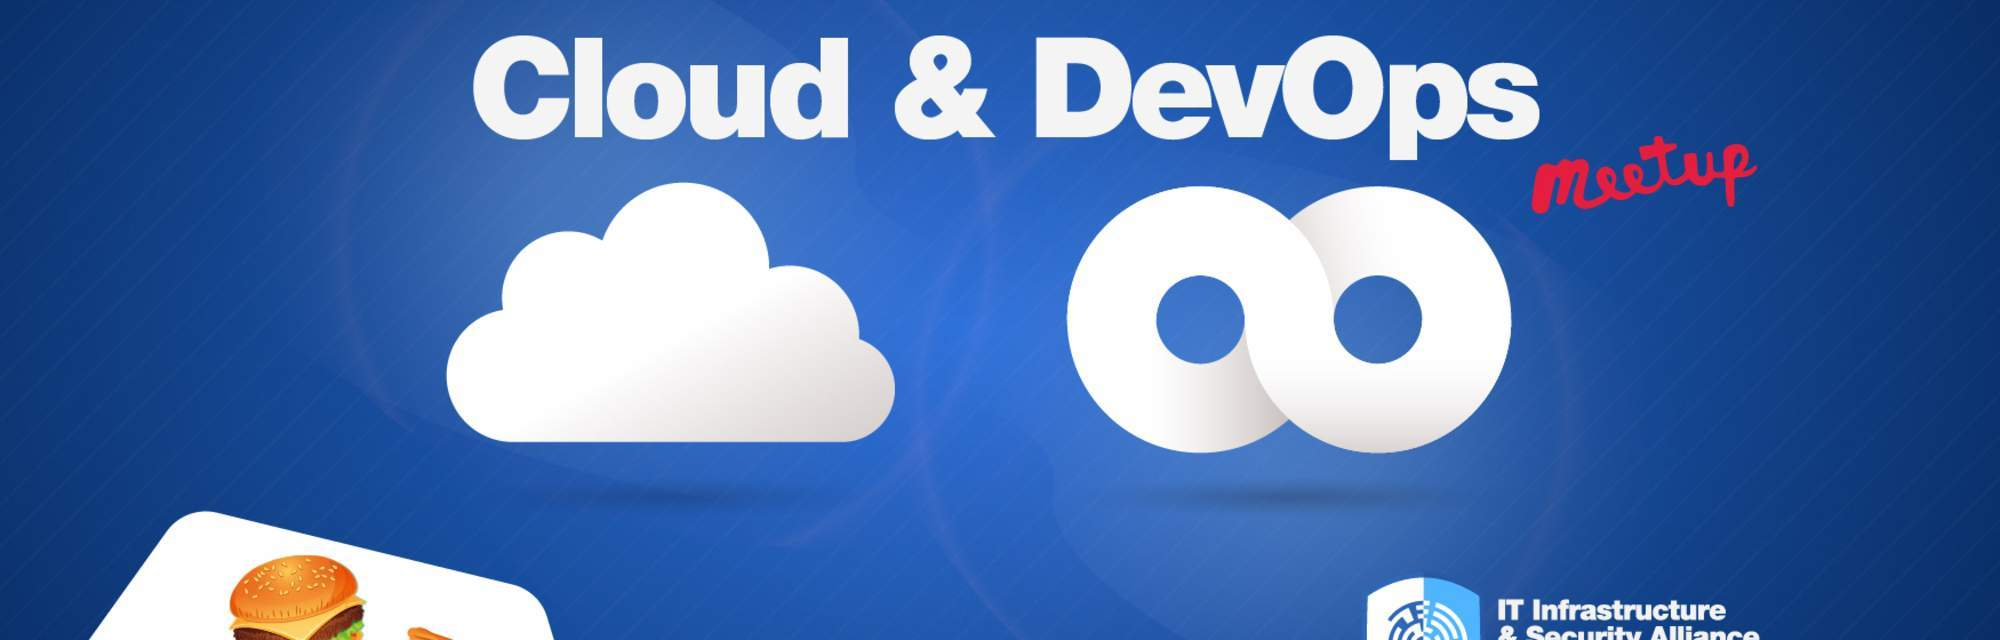 Event: DevOps & Cloud Meetup